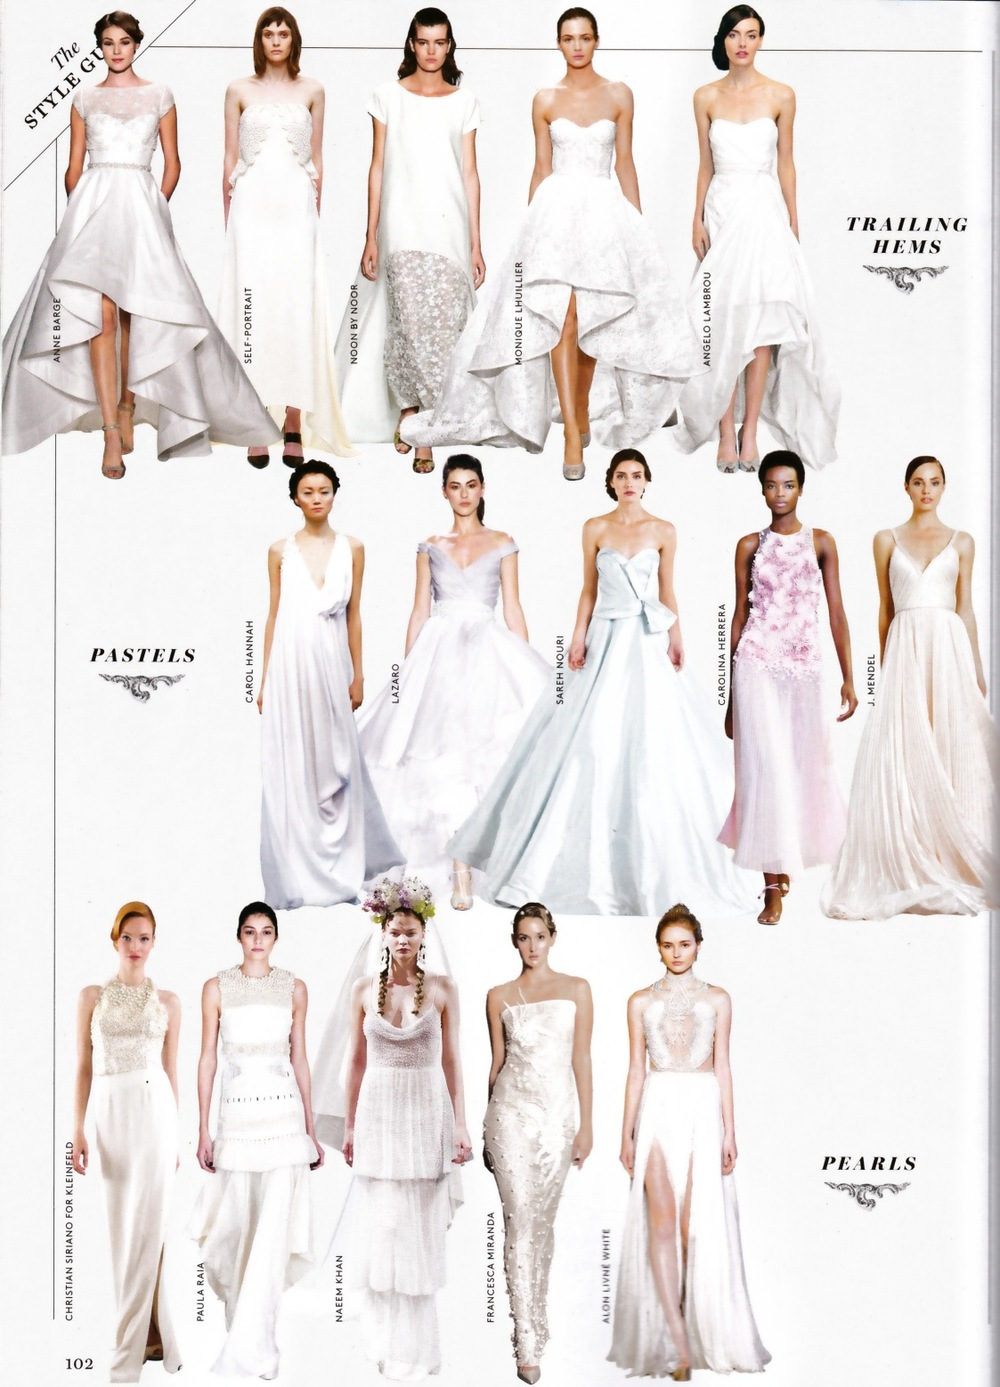 New York Weddings spring 2016 feature pasithea.jpeg